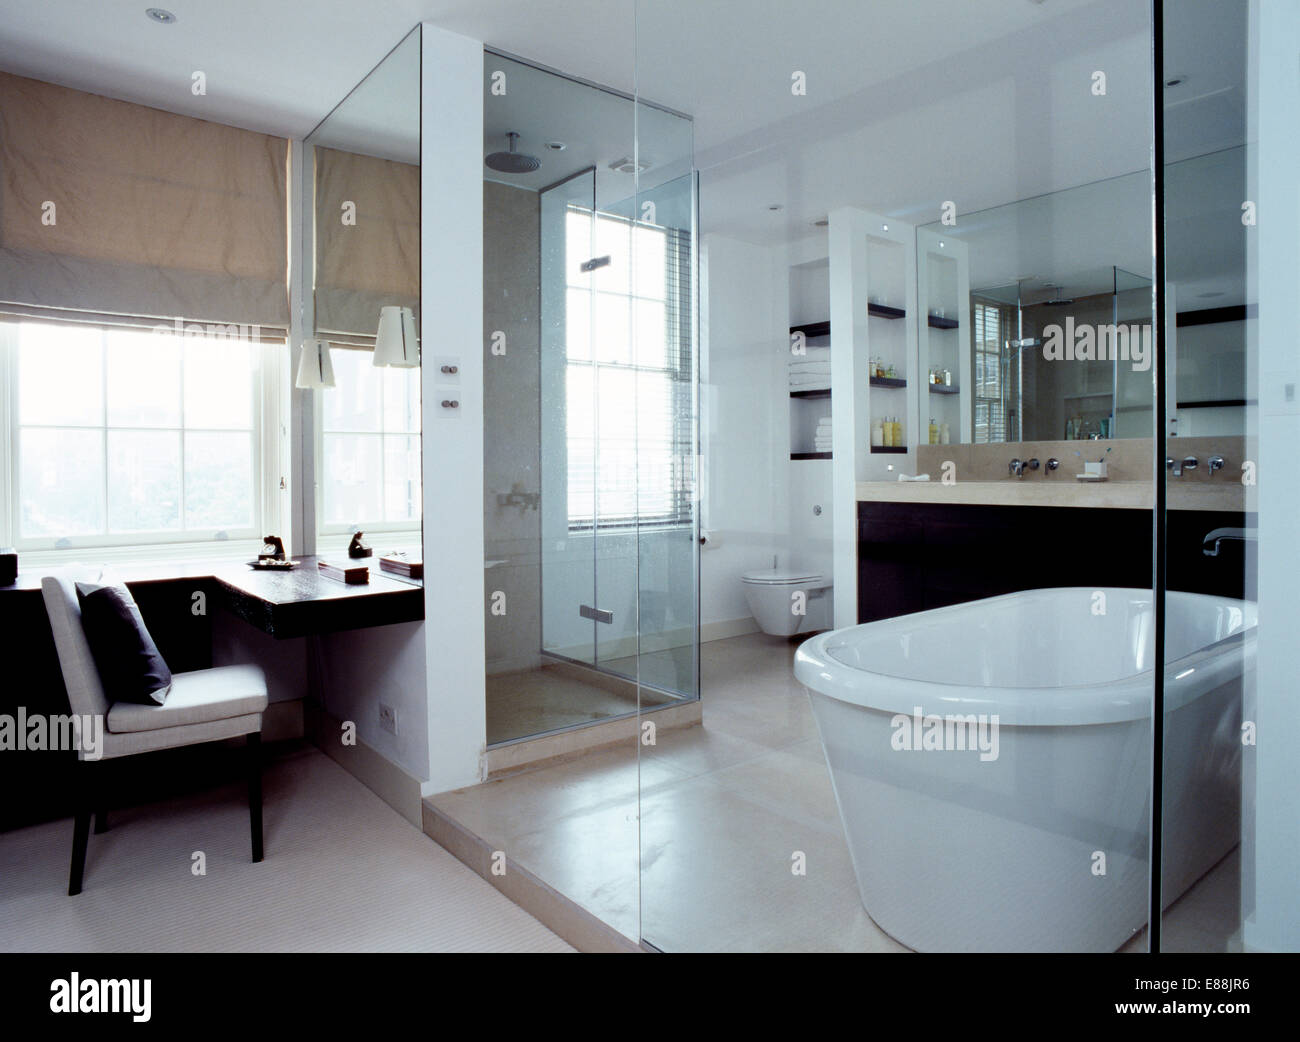 Glass Partition Wall In Modern Bathroom With White Rolltop Bath - Glass partition wall for bathroom